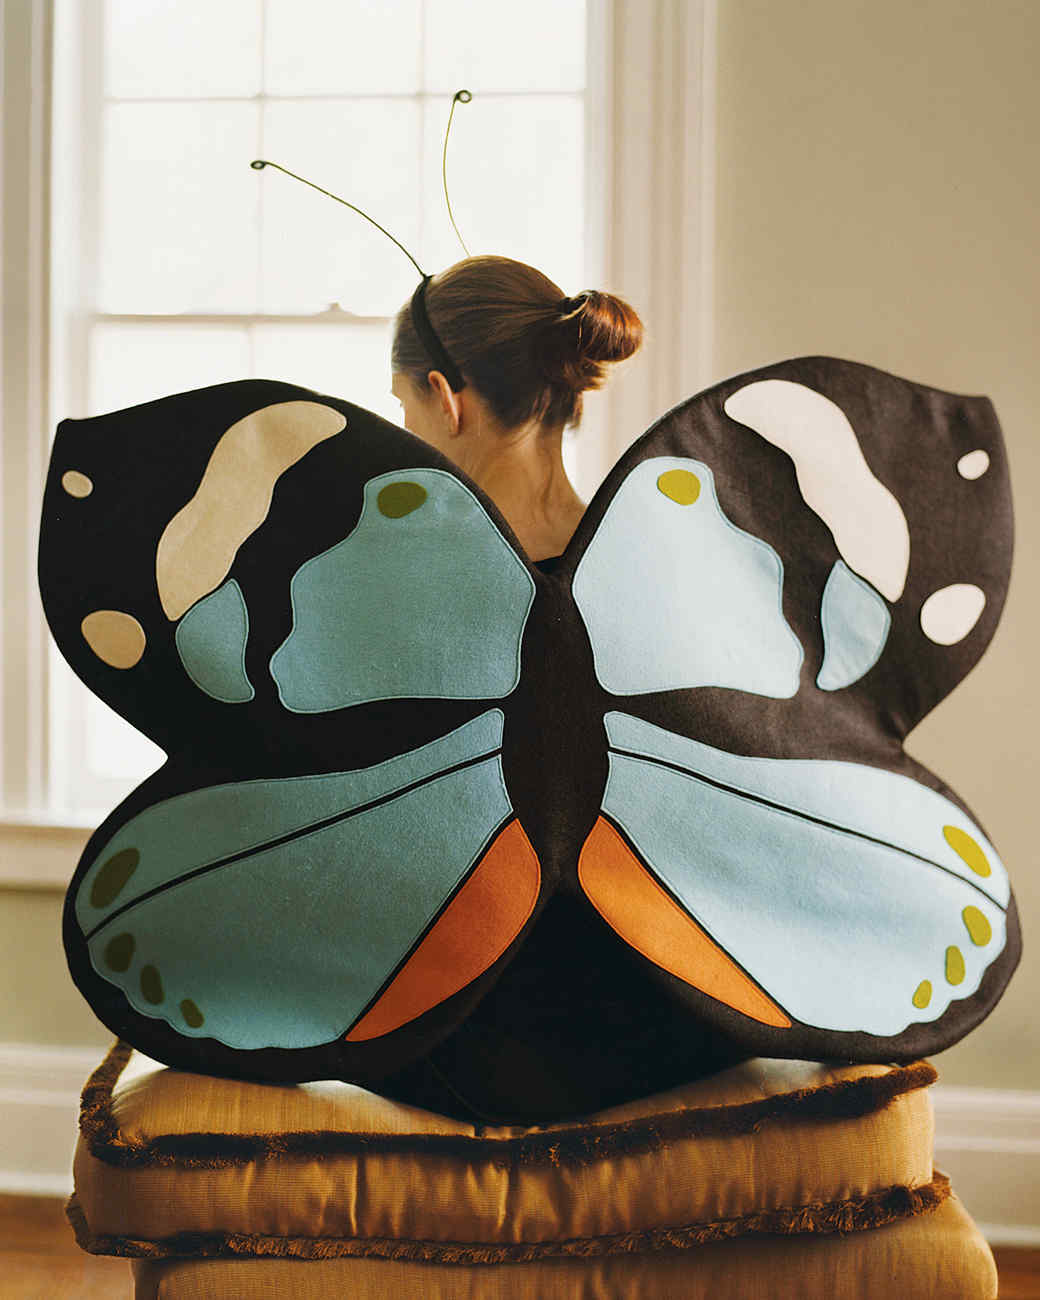 Sewing a butterfly costume for a girl with your own hands: a chic outfit at no extra cost 100